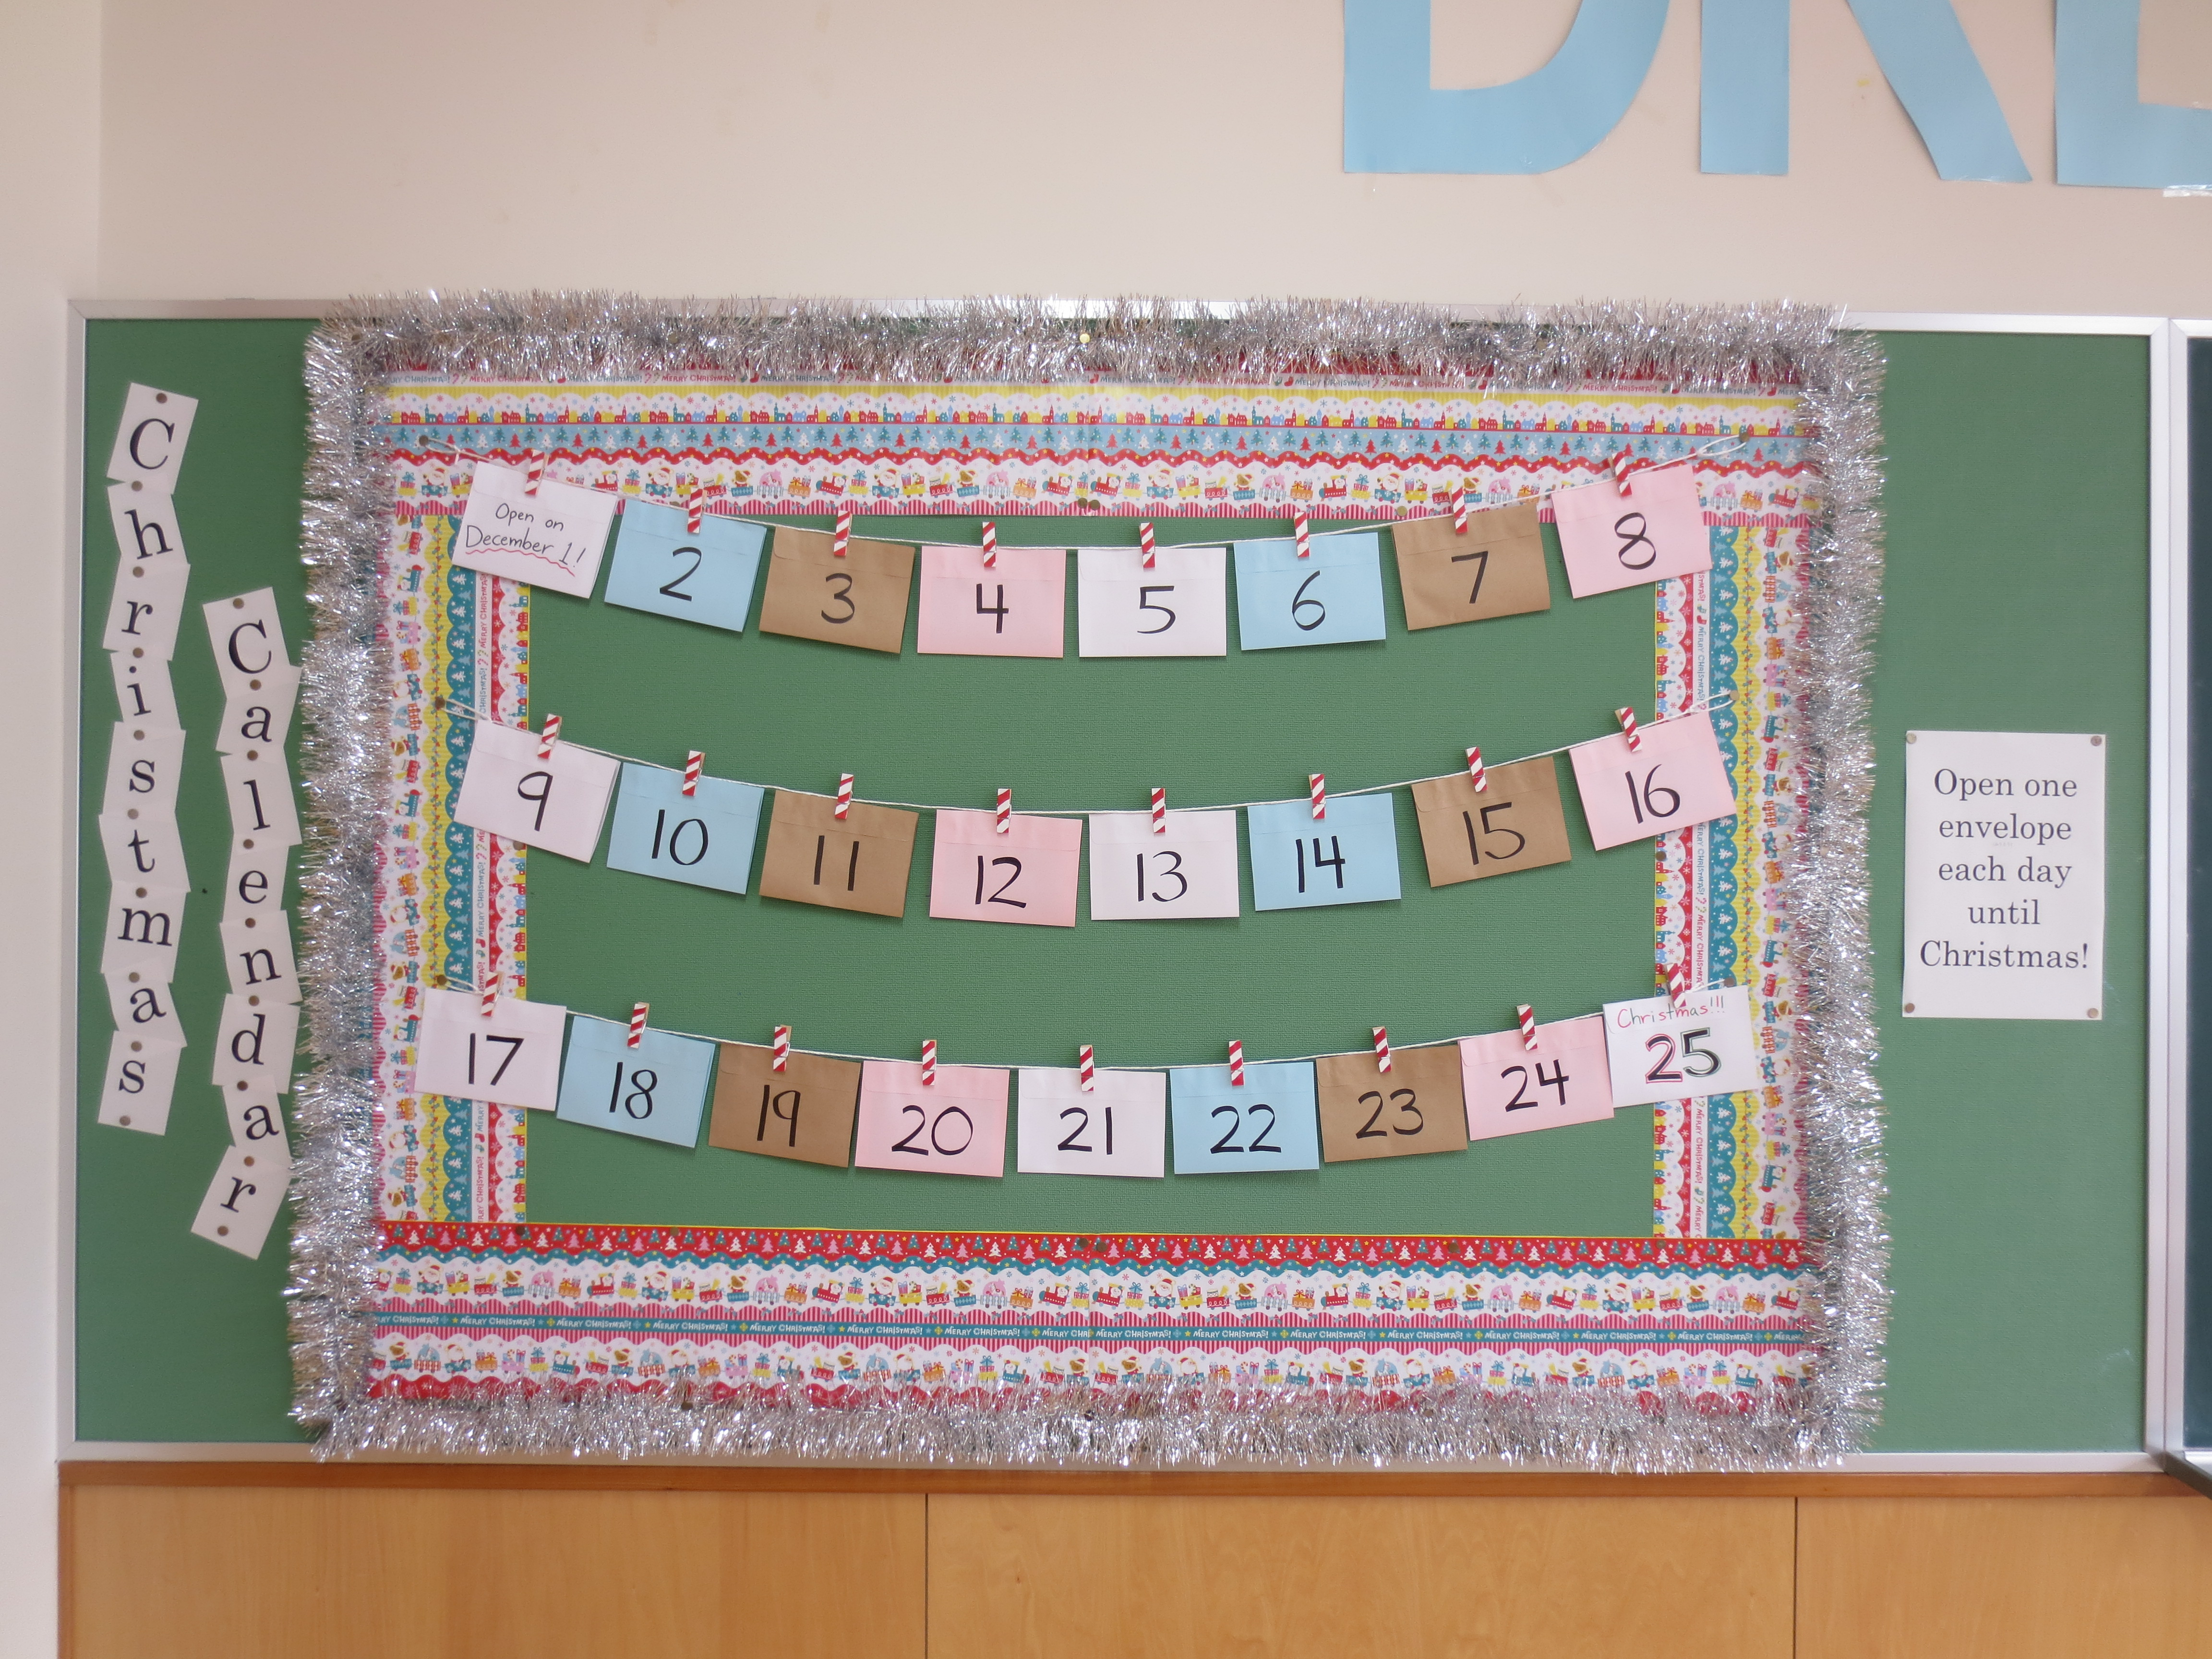 10 Lovely Bulletin Board Ideas For Elementary School simple english bulletin board ideas e7b4a0e695b5e381aae383a9e382a4e38395 5 2020